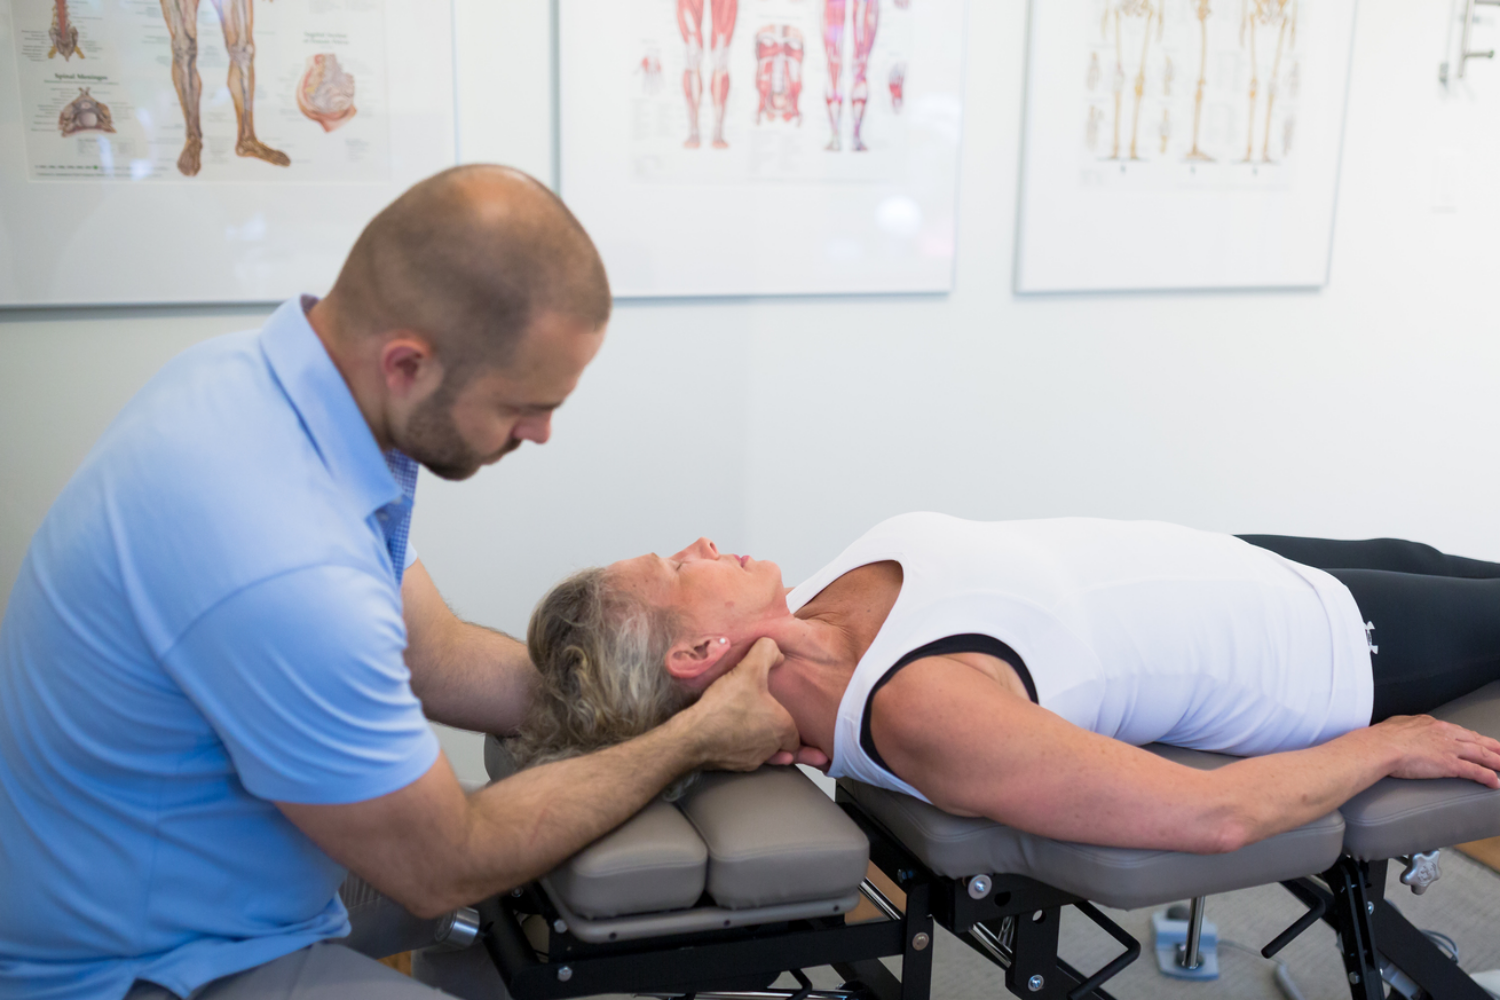 Dr. Nick Treatment of Neck Pain and Whiplash Associated Disorder in Toronto